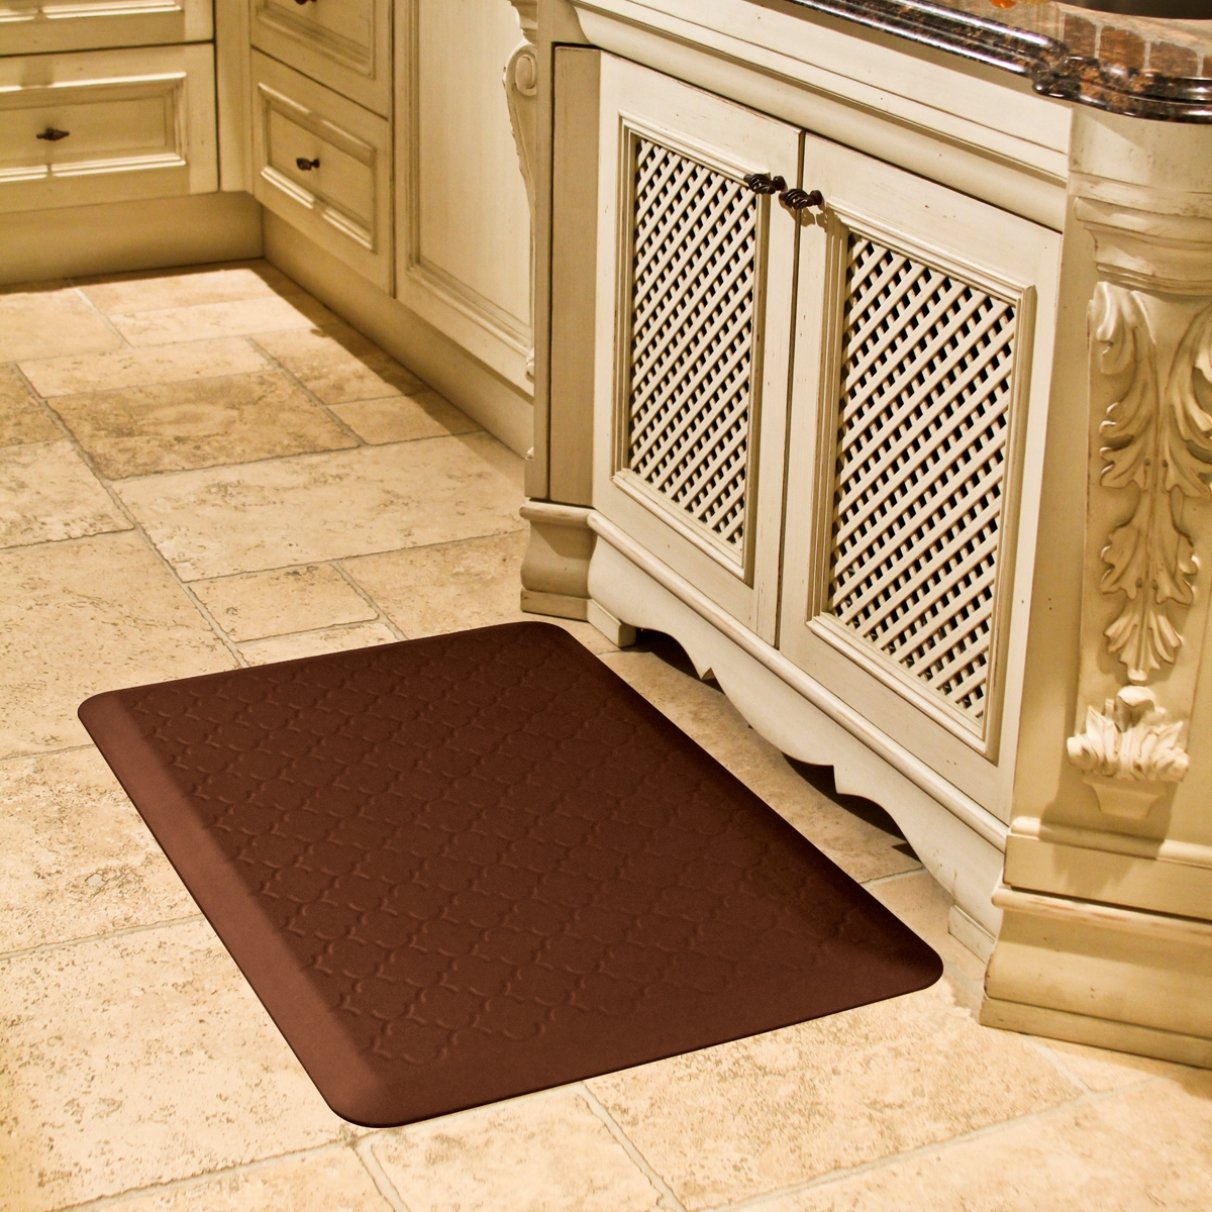 Amazon.com: WellnessMats Anti Fatigue Trellis Motif Kitchen Mat, 36 Inch By  24 Inch, Brown: Kitchen U0026 Dining